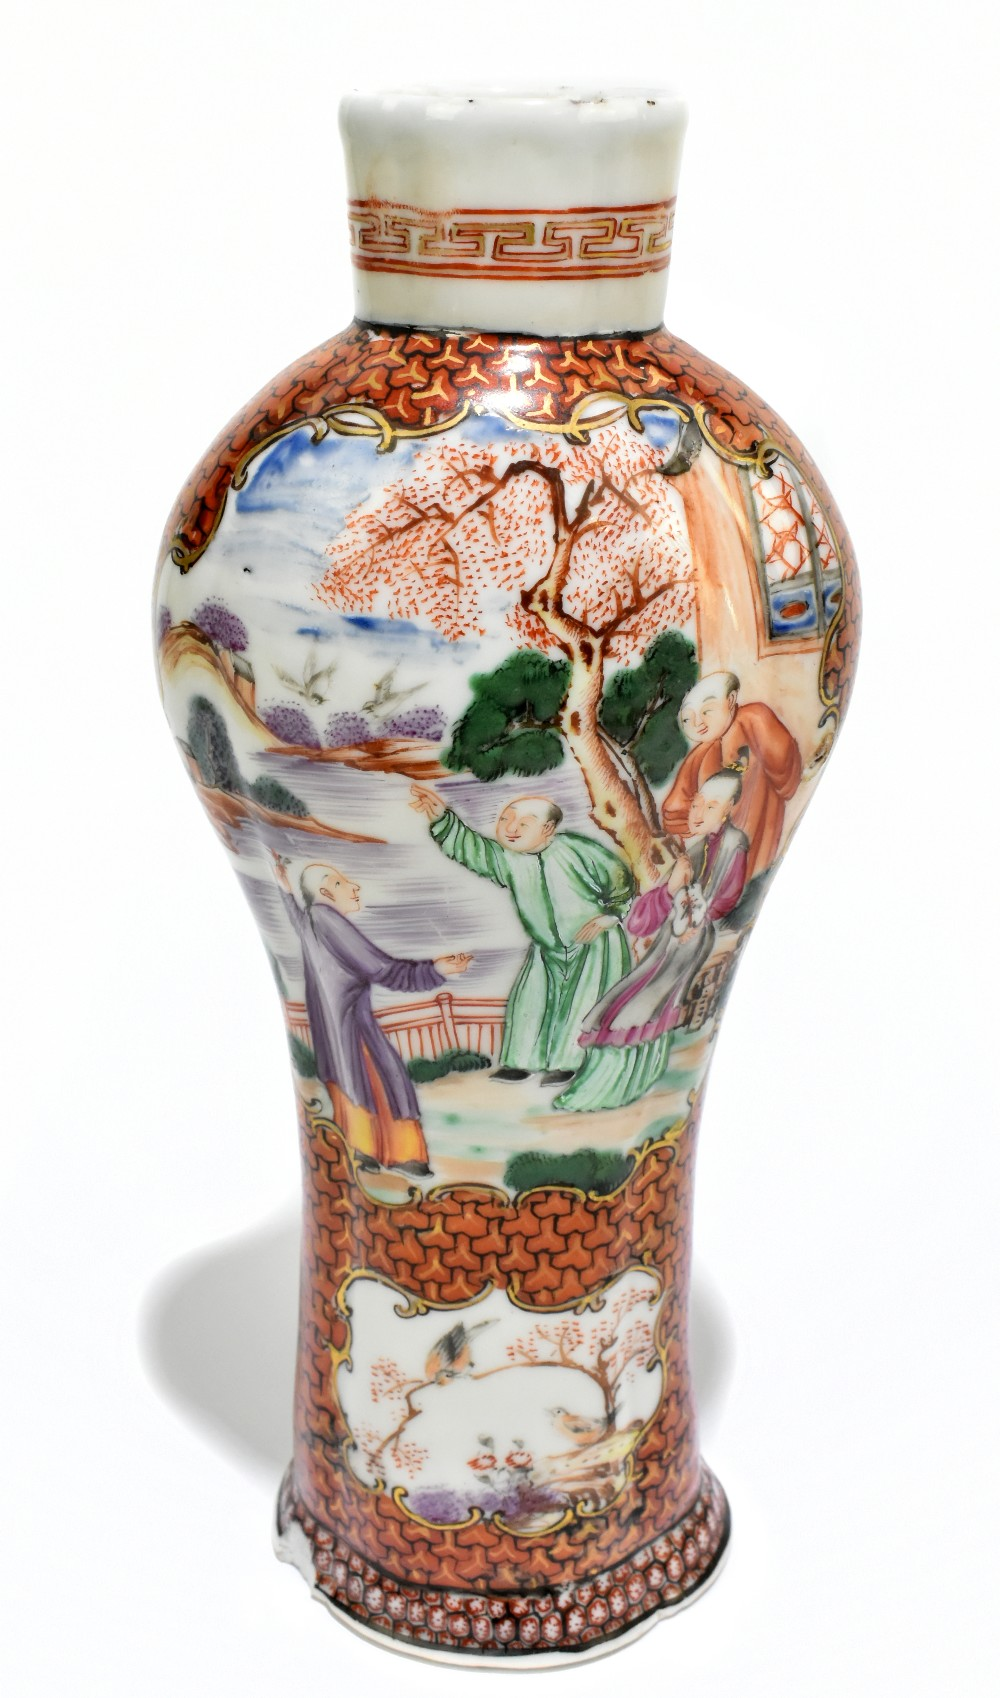 An 18th century Chinese Famille Rose porcelain vase painted in panels with elders in landscape